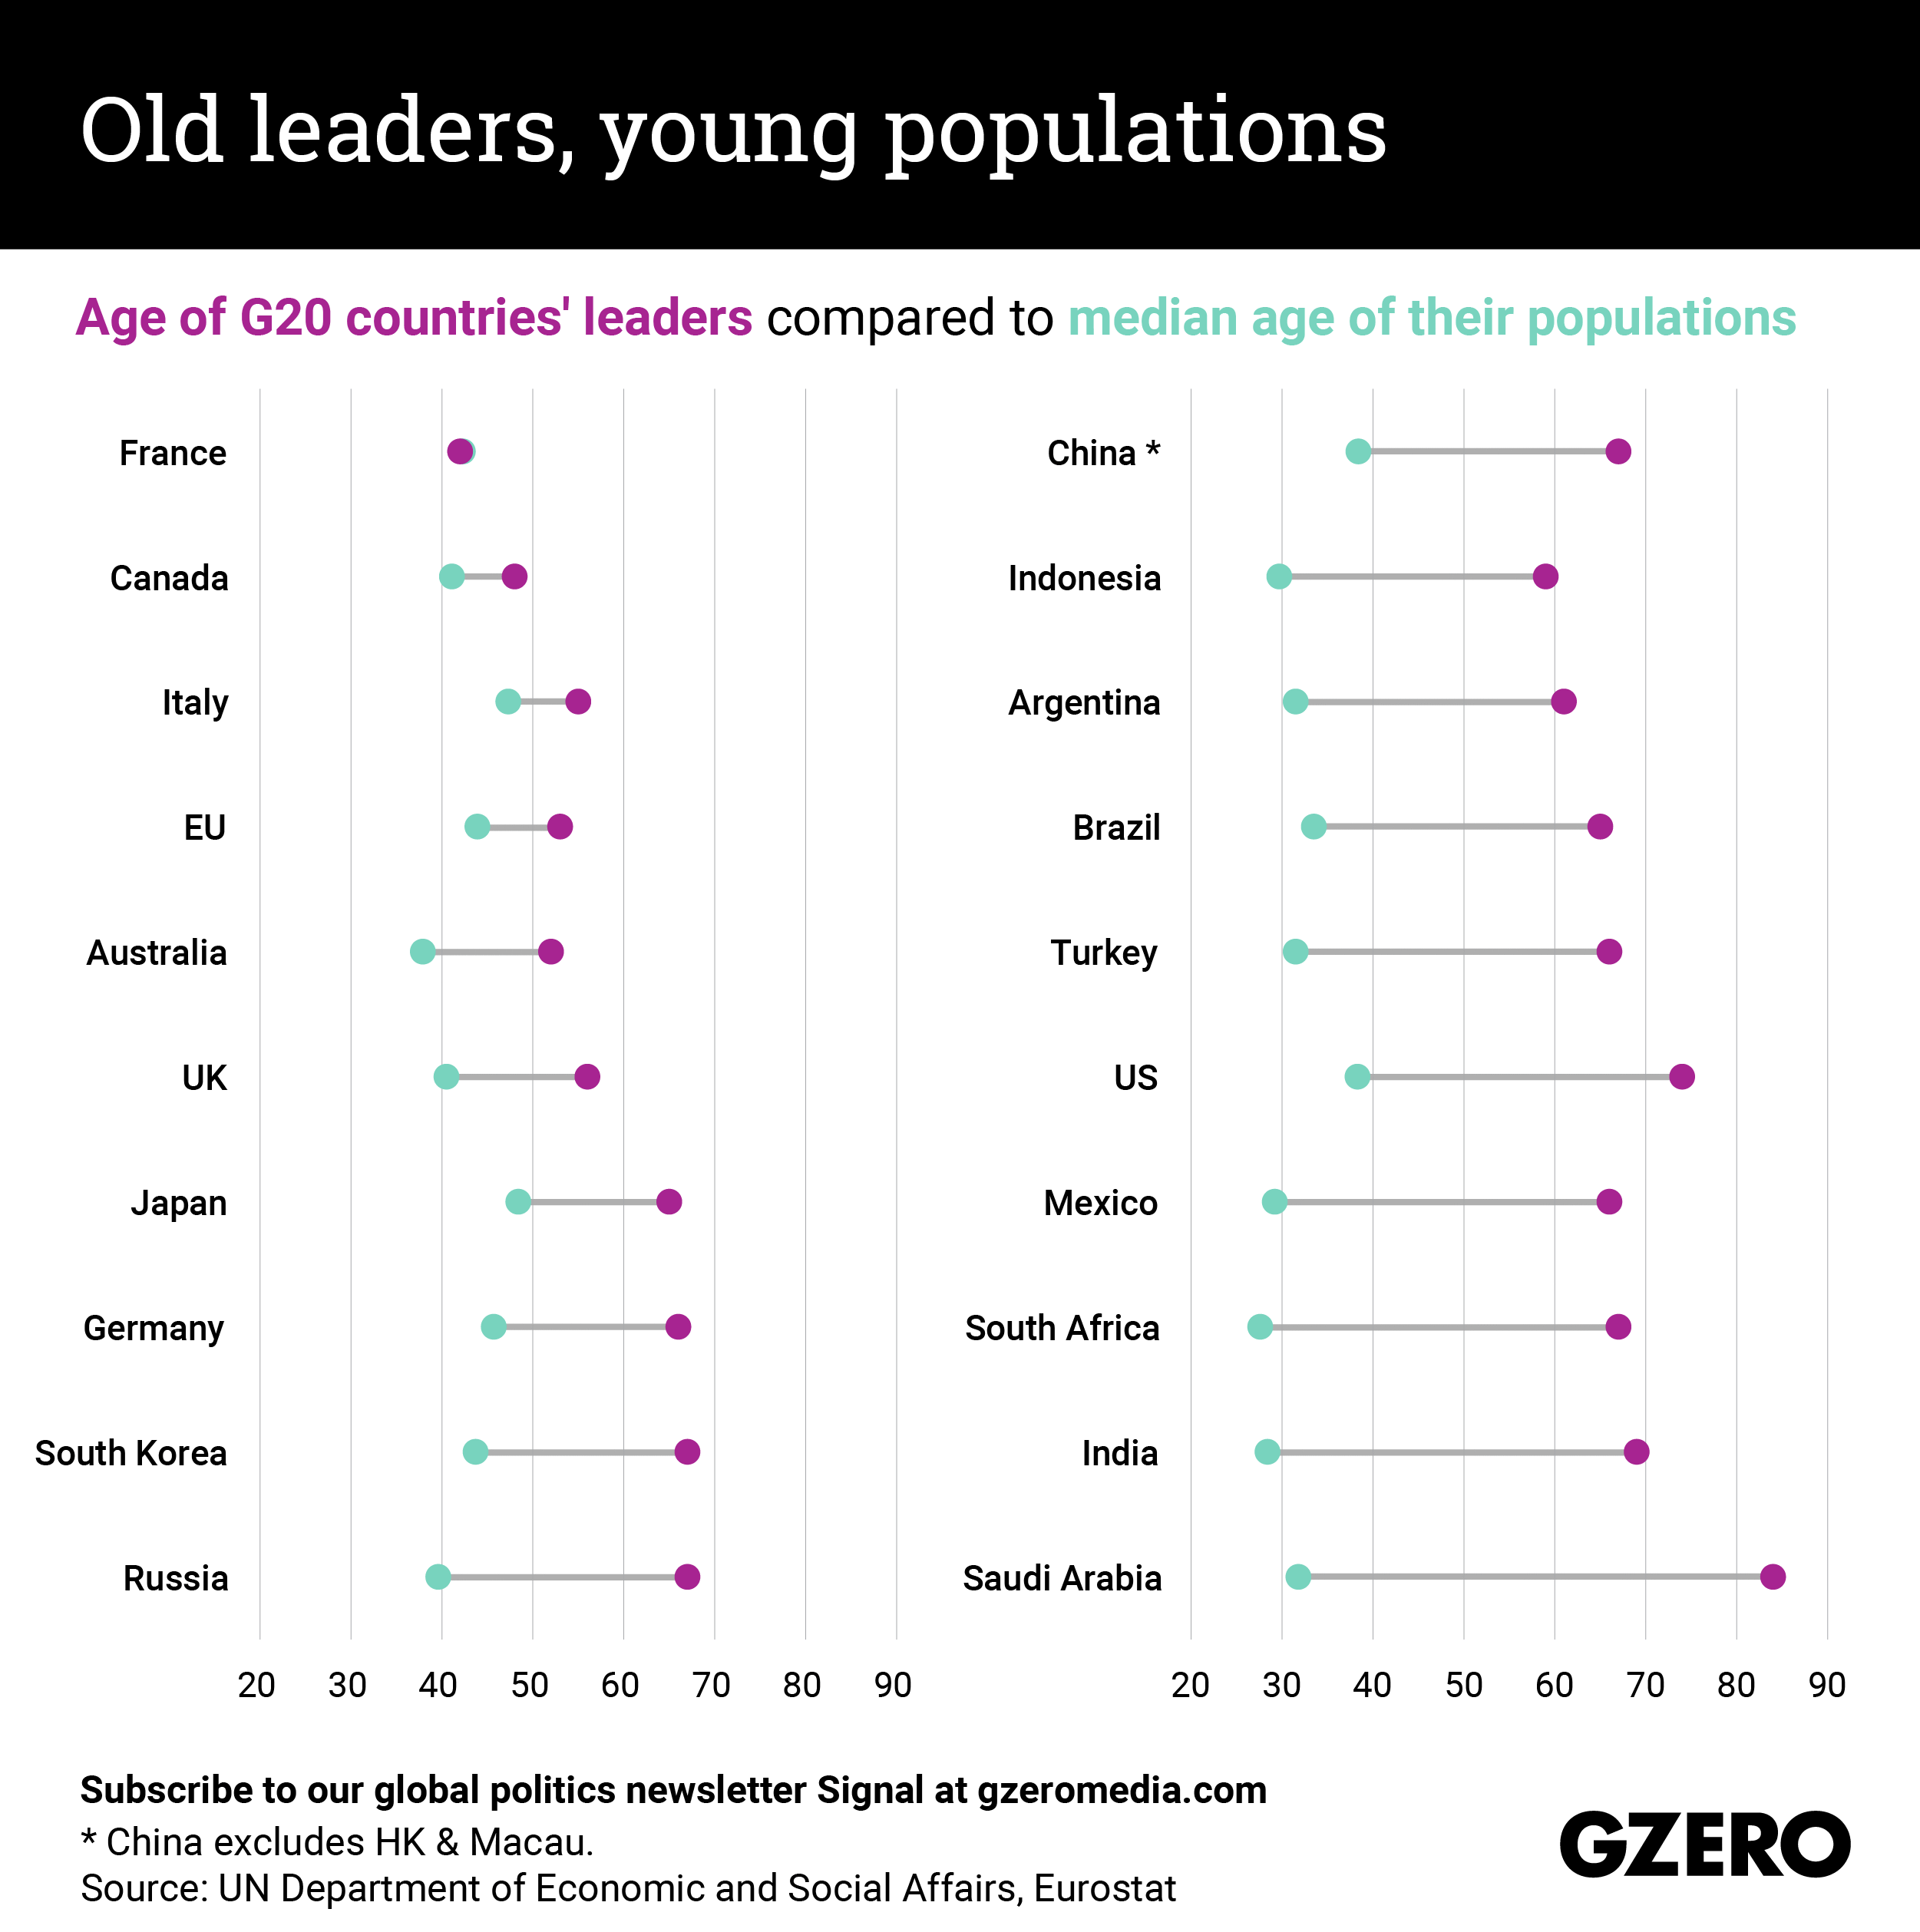 The Graphic Truth: Old leaders, young populations